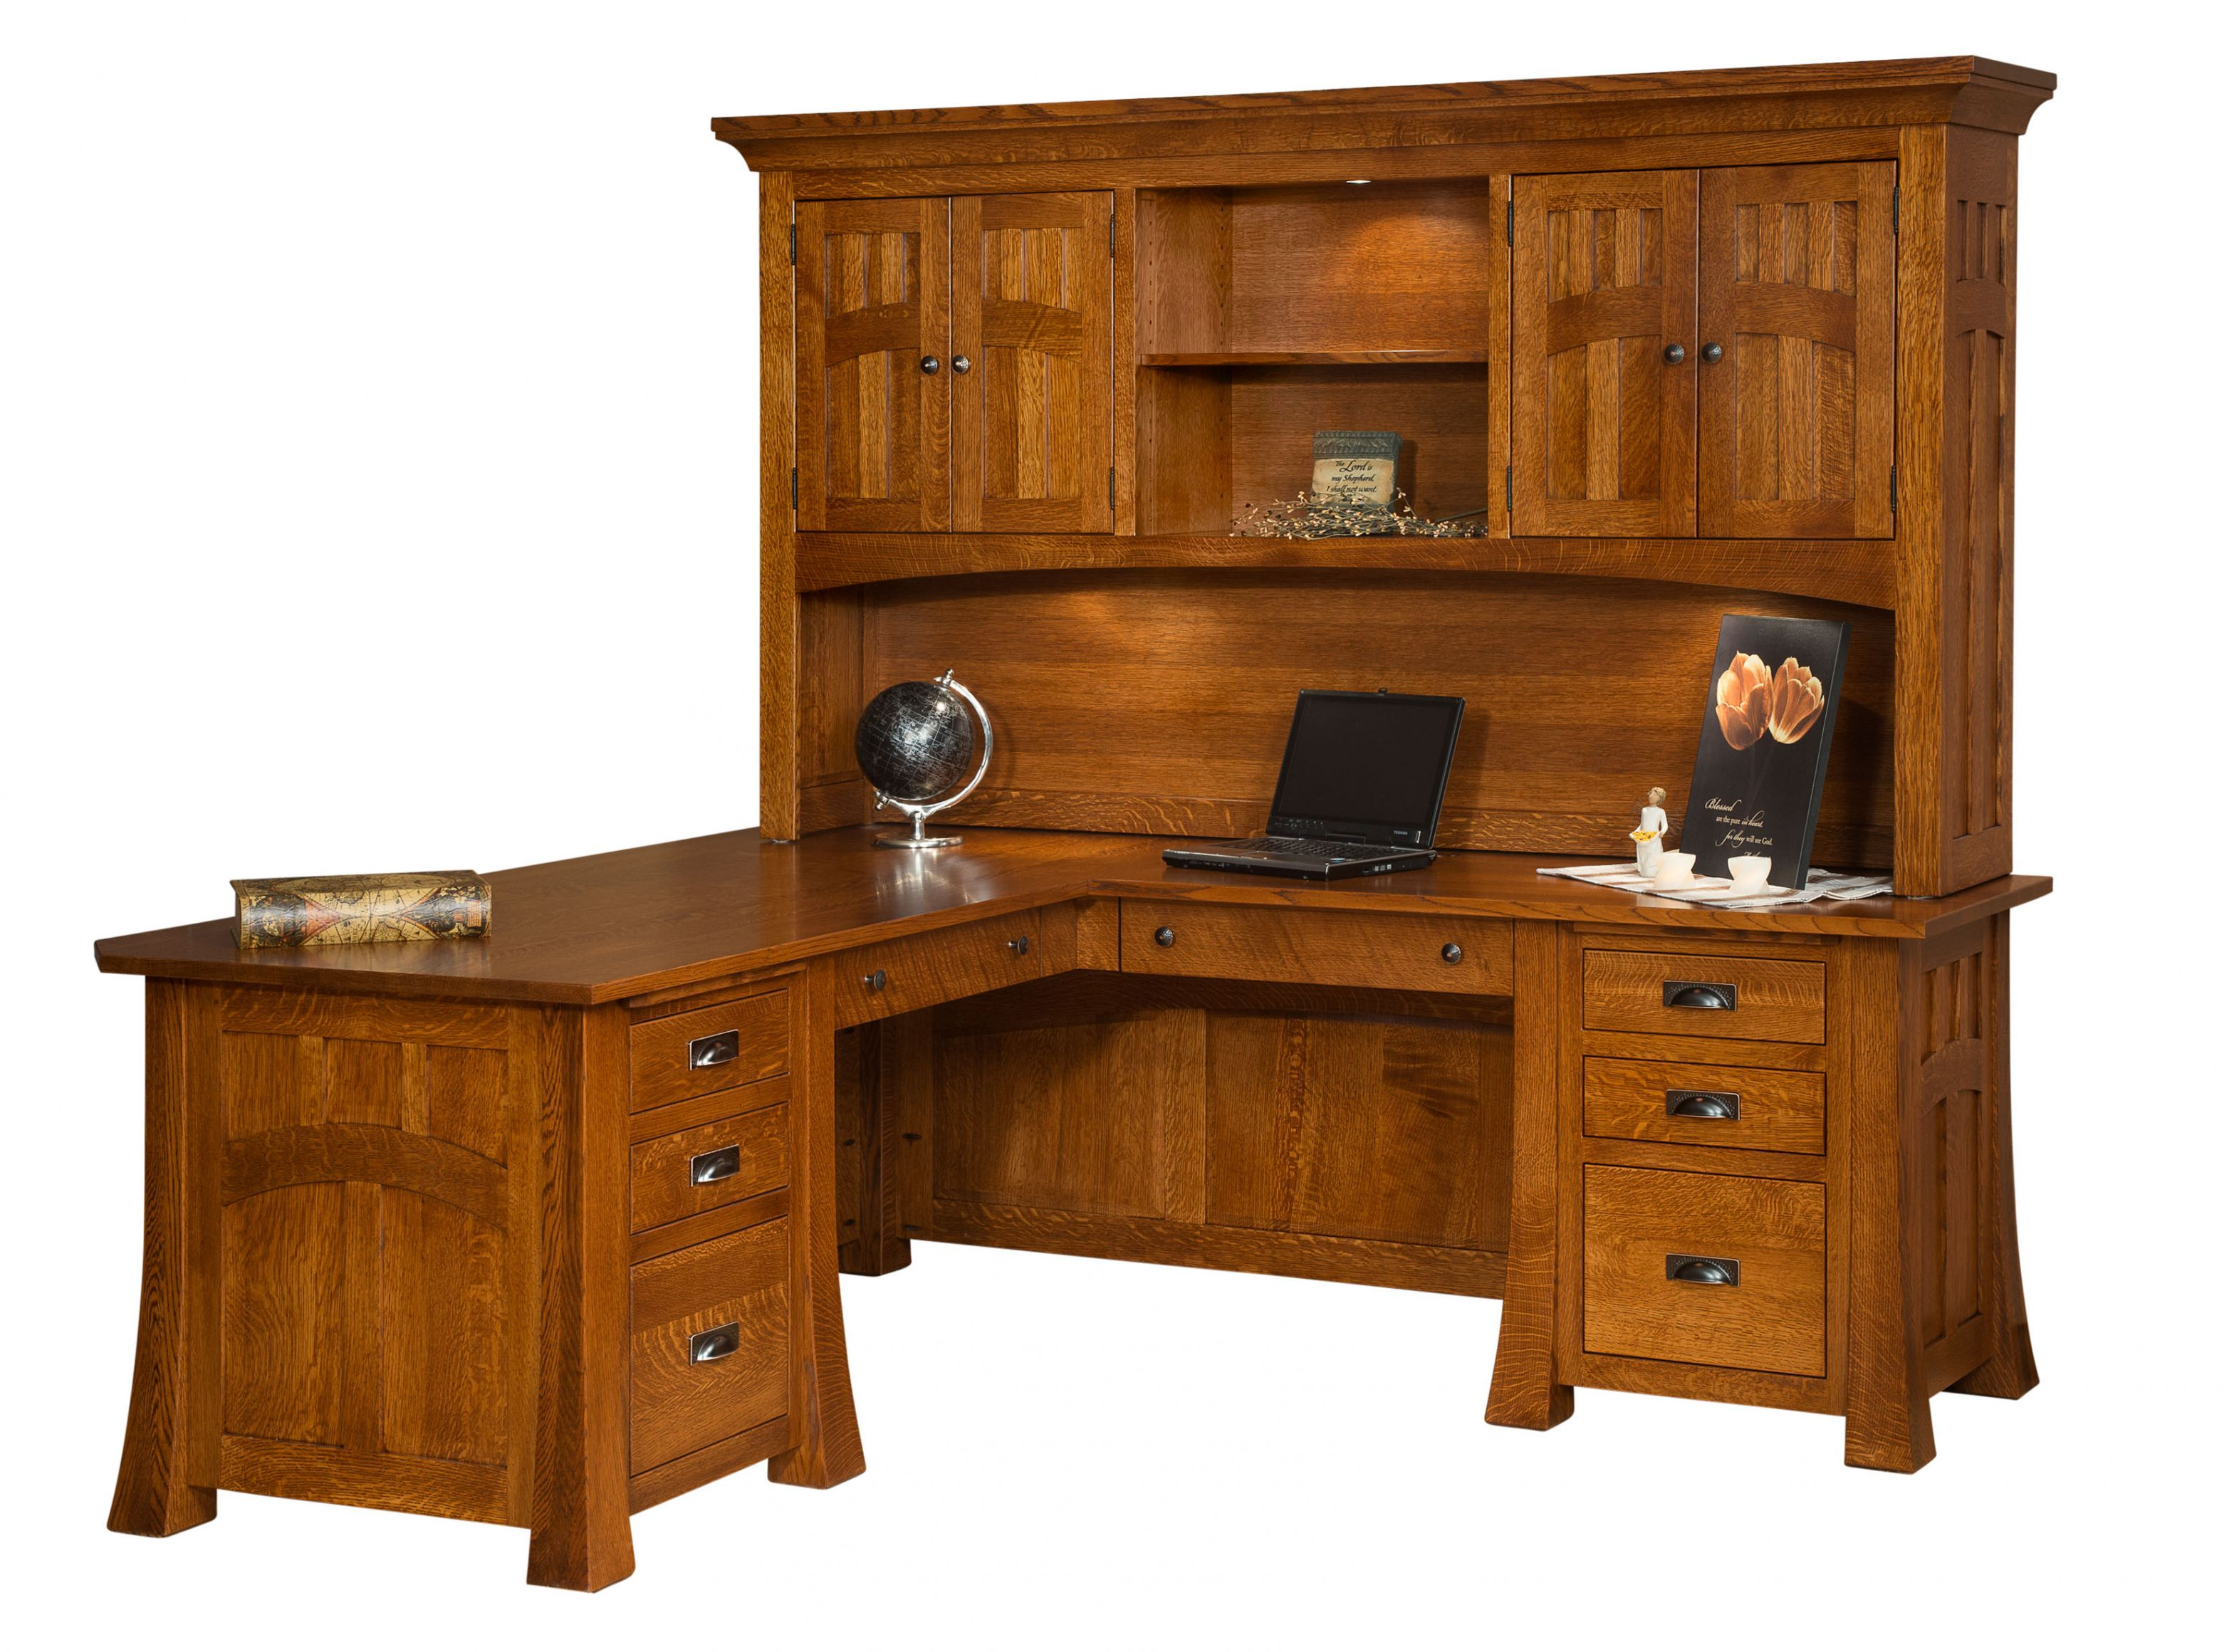 99 Oak Corner Desk With Hutch Home Office Furniture Set Check More At Http